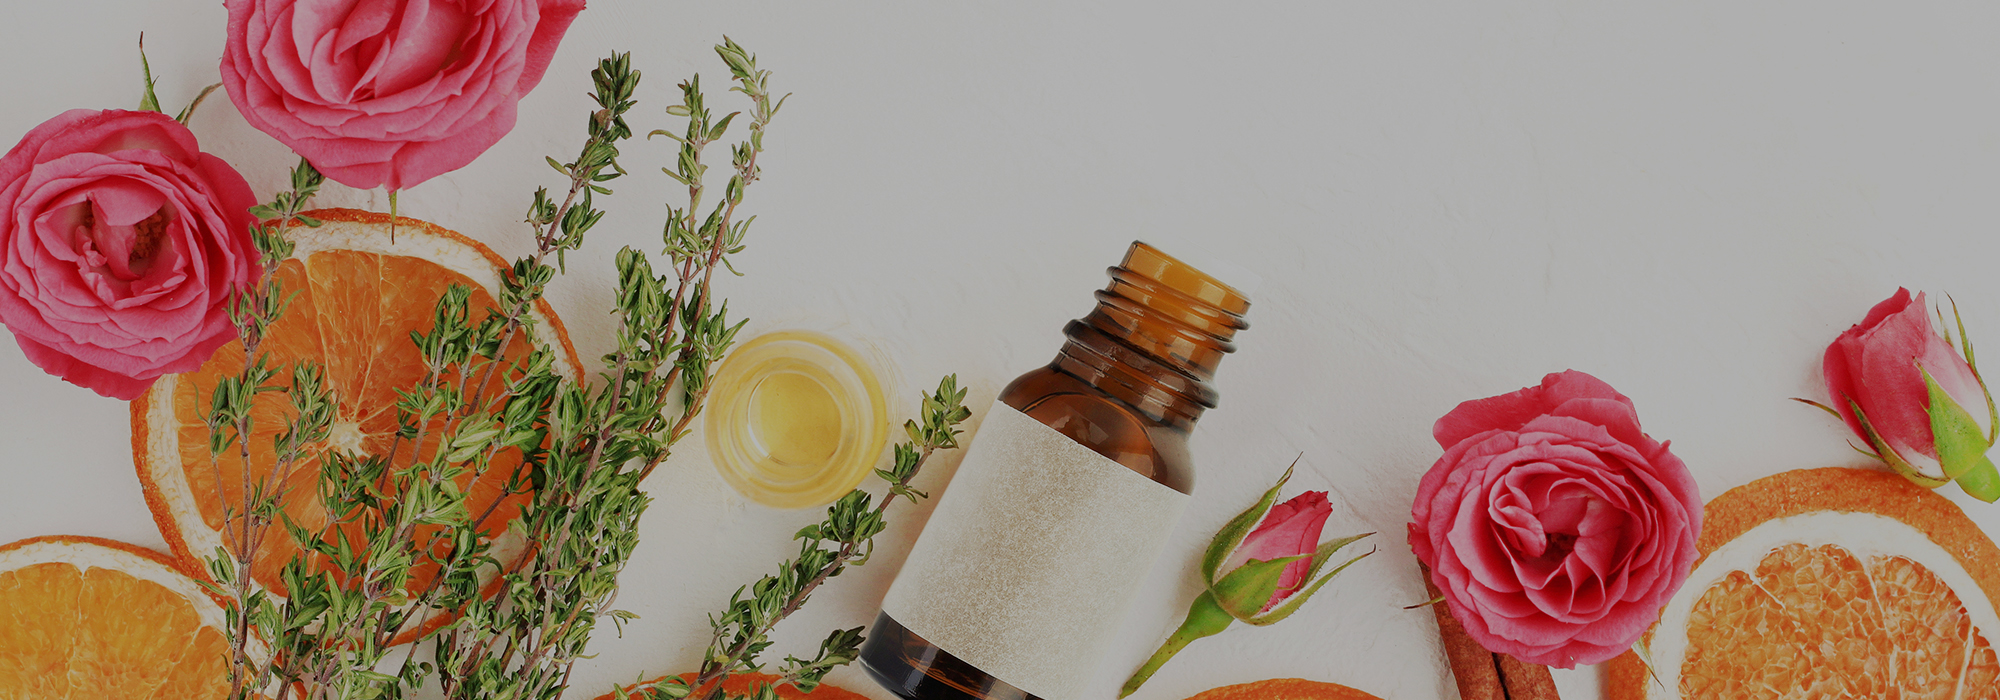 Essential Oils – Why We Can't Get Enough